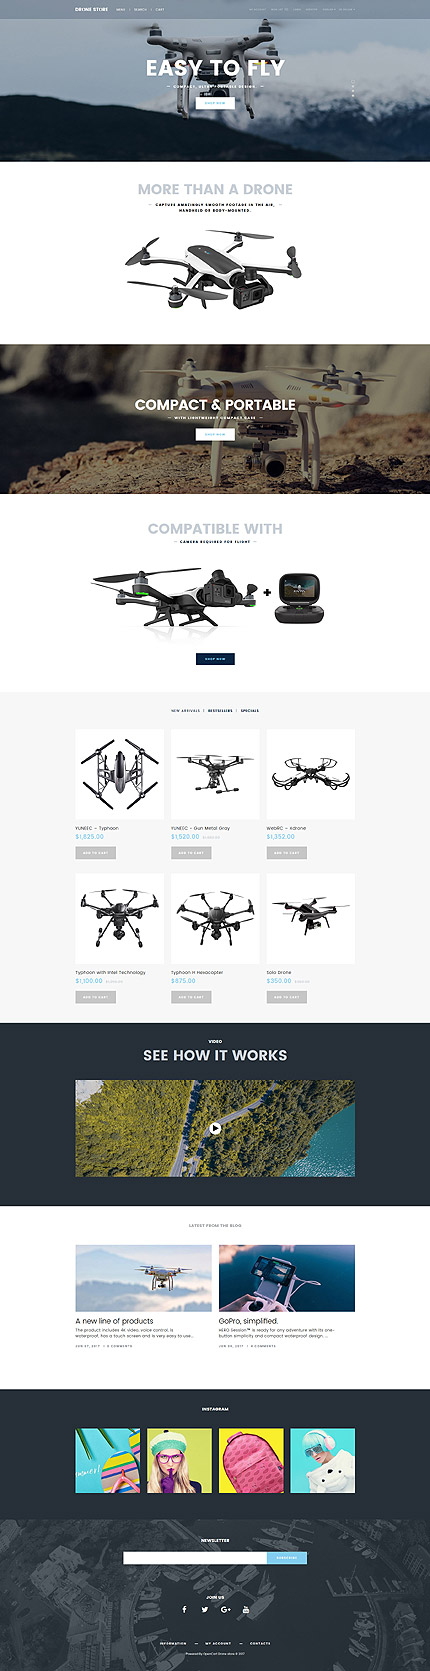 Electronics Most Popular website inspirations at your coffee break? Browse for more OpenCart #templates! // Regular price: $72 // Sources available: .PSD, .PNG, .PHP, .TPL, .JS #Electronics #Most Popular #OpenCart